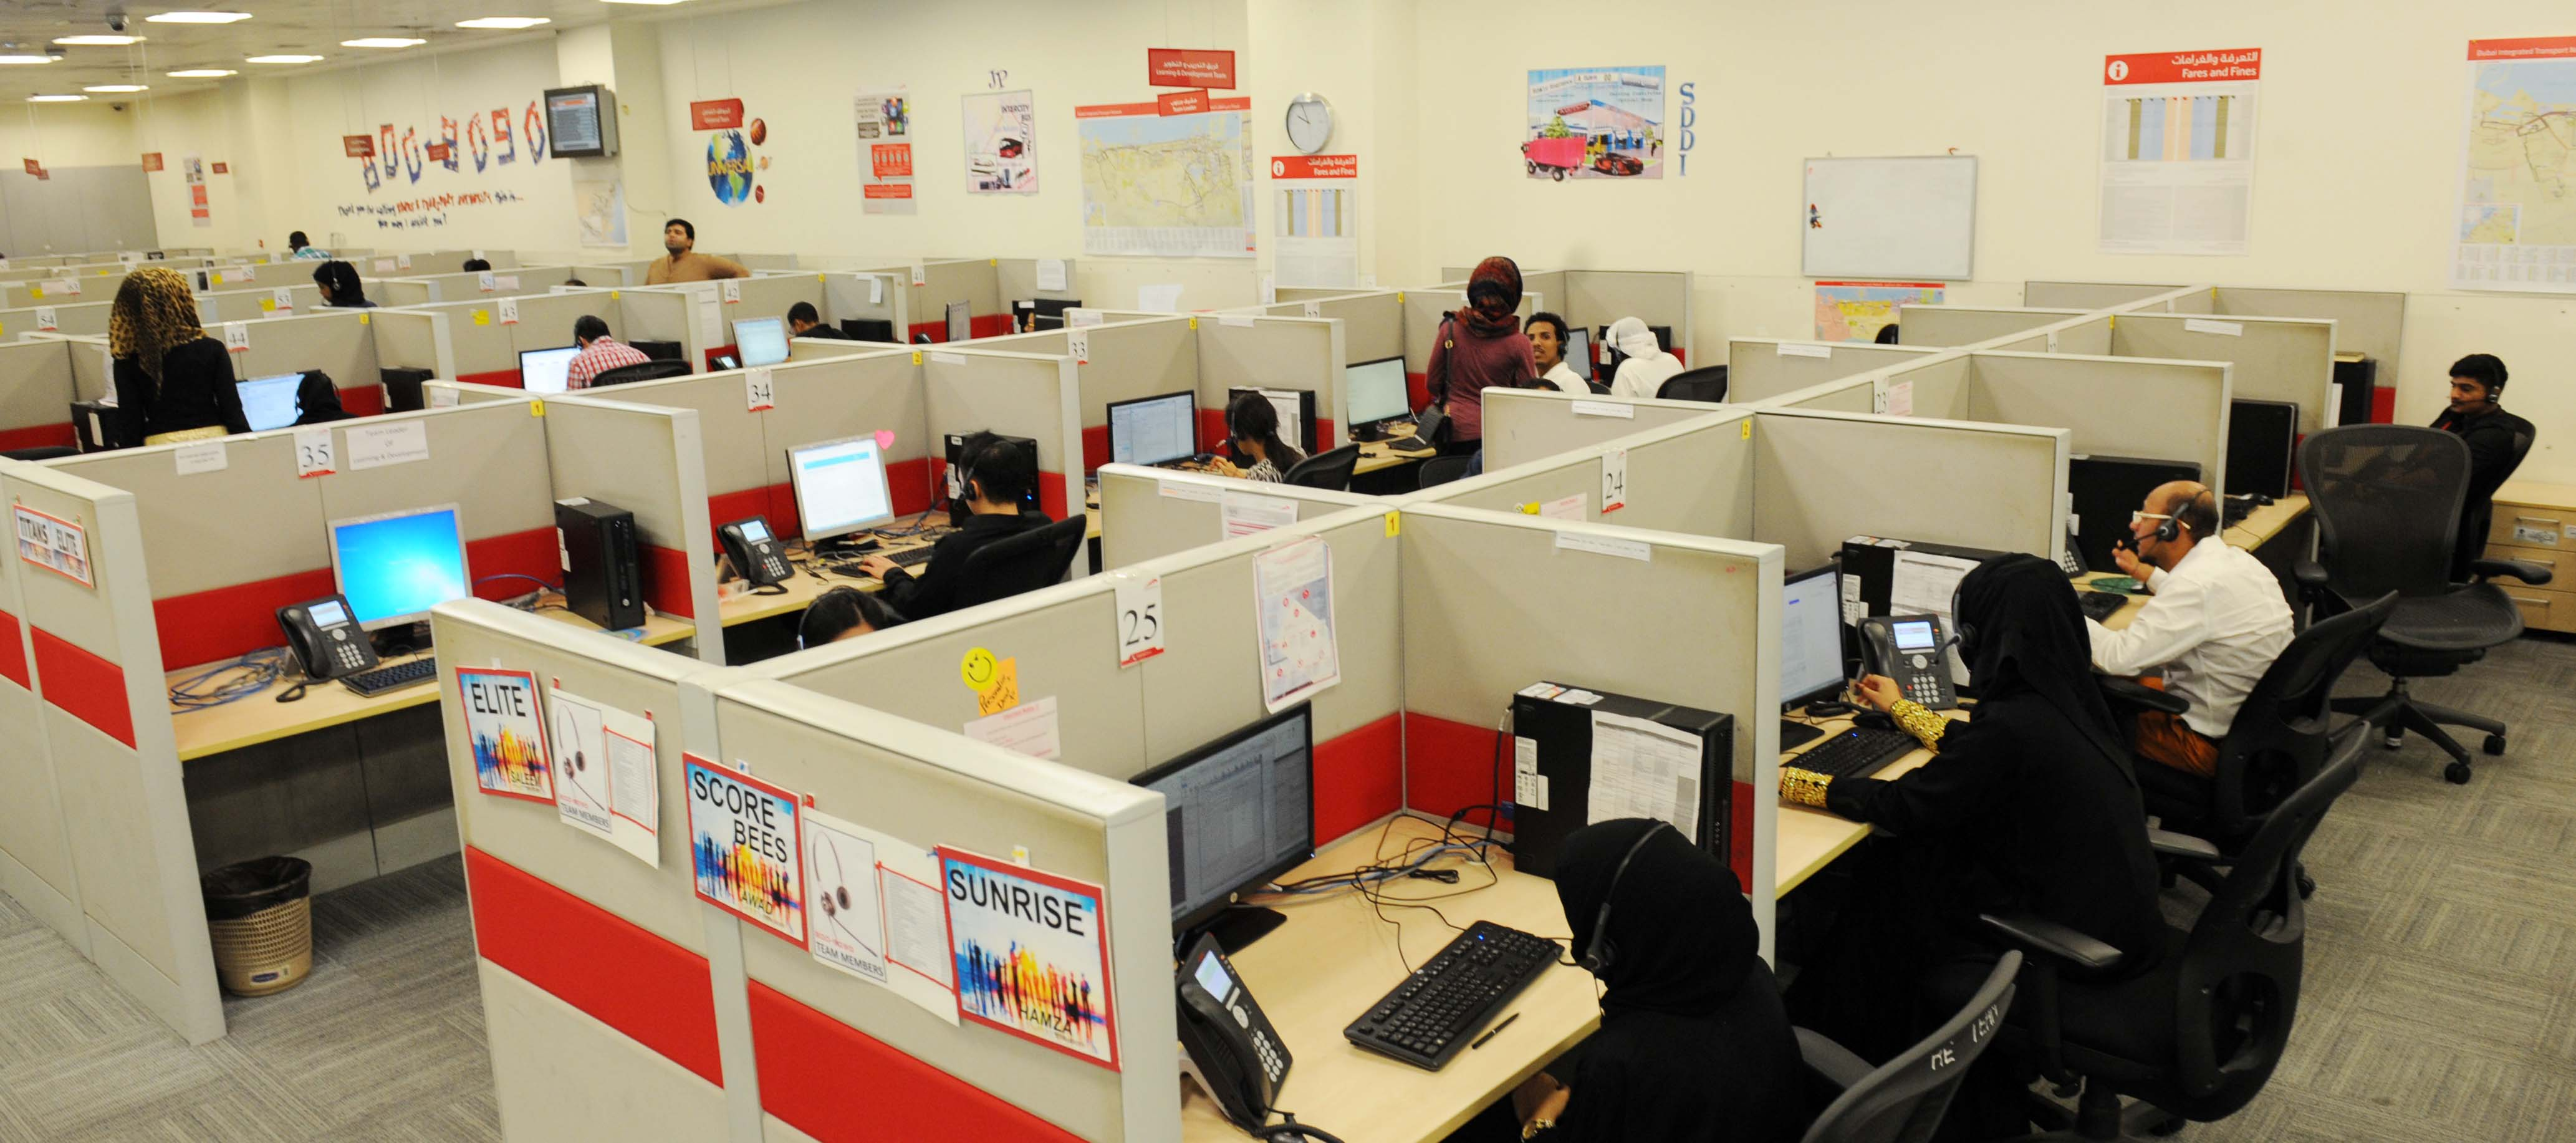 Rta Call Center Receives 2 5m Calls In 2015 Dayofdubai